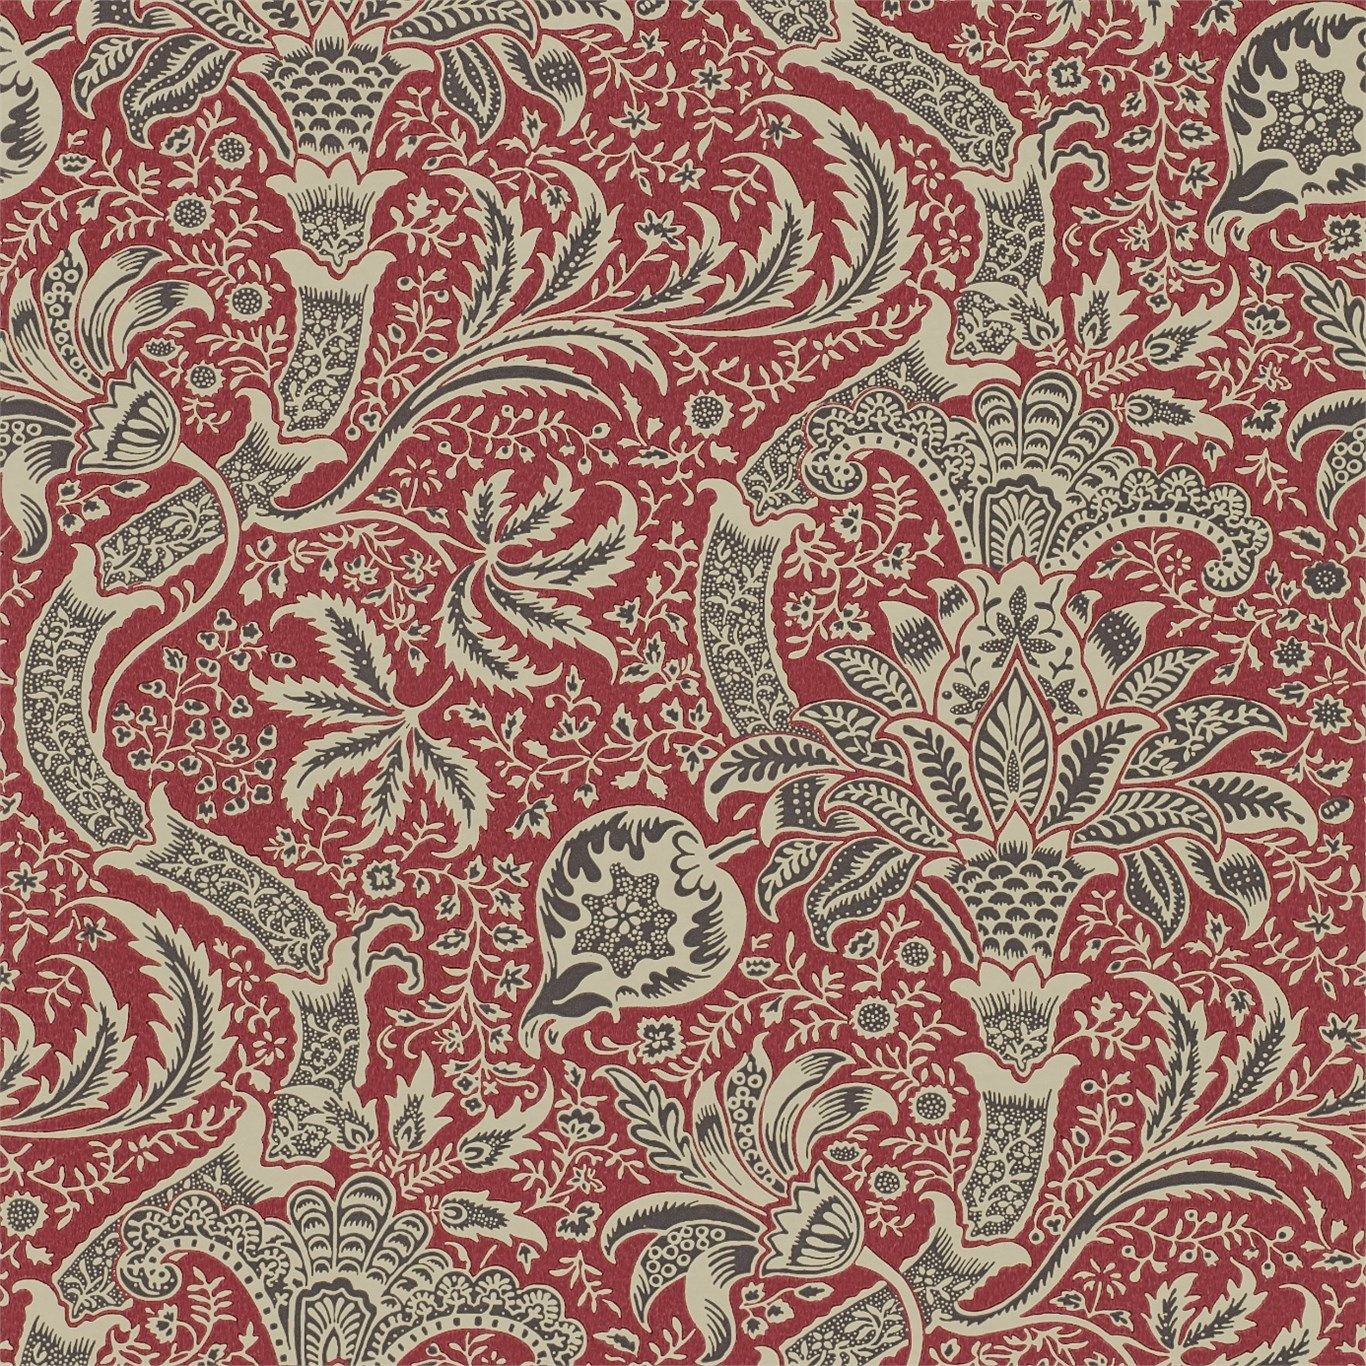 The Original Morris Co Arts And Crafts Fabrics And Wallpaper Designs By William Morris Art And Craft Videos Arts And Crafts Interiors Victorian Wallpaper